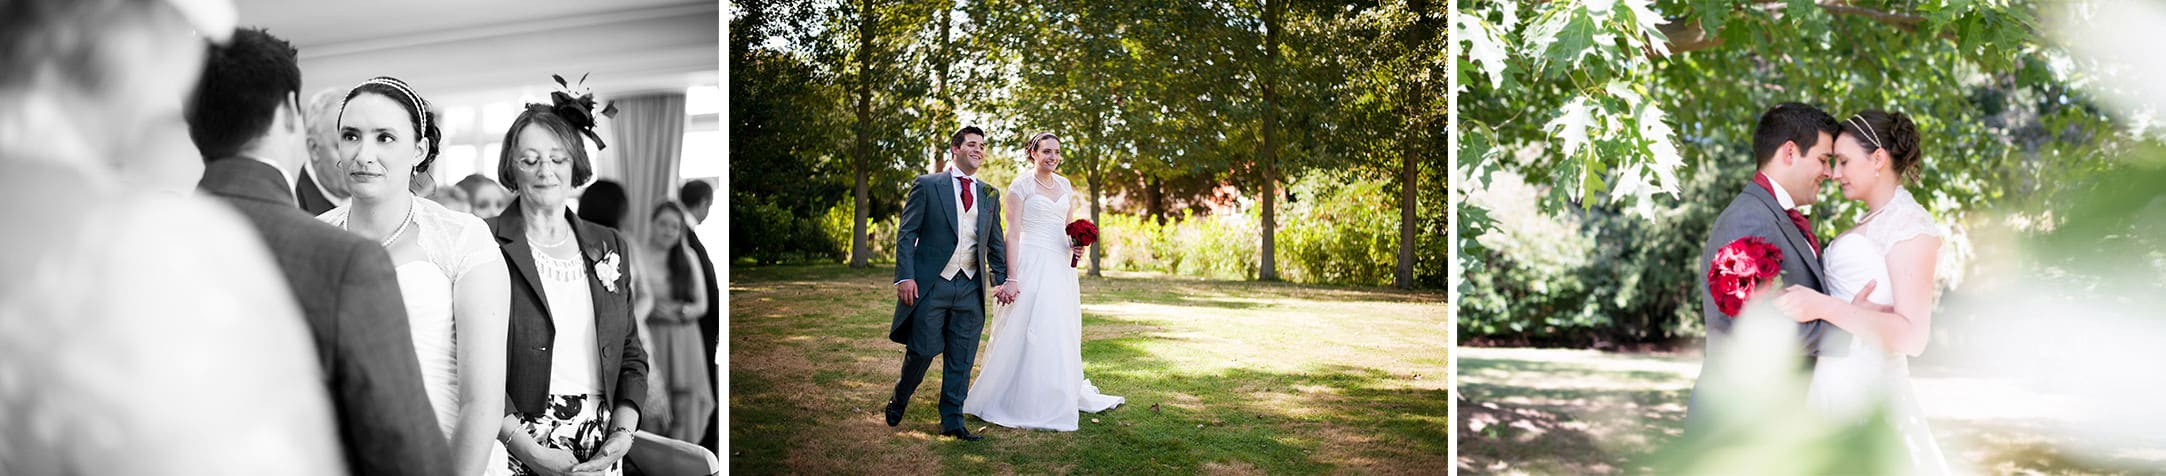 Woodlands Park Hotel Wedding